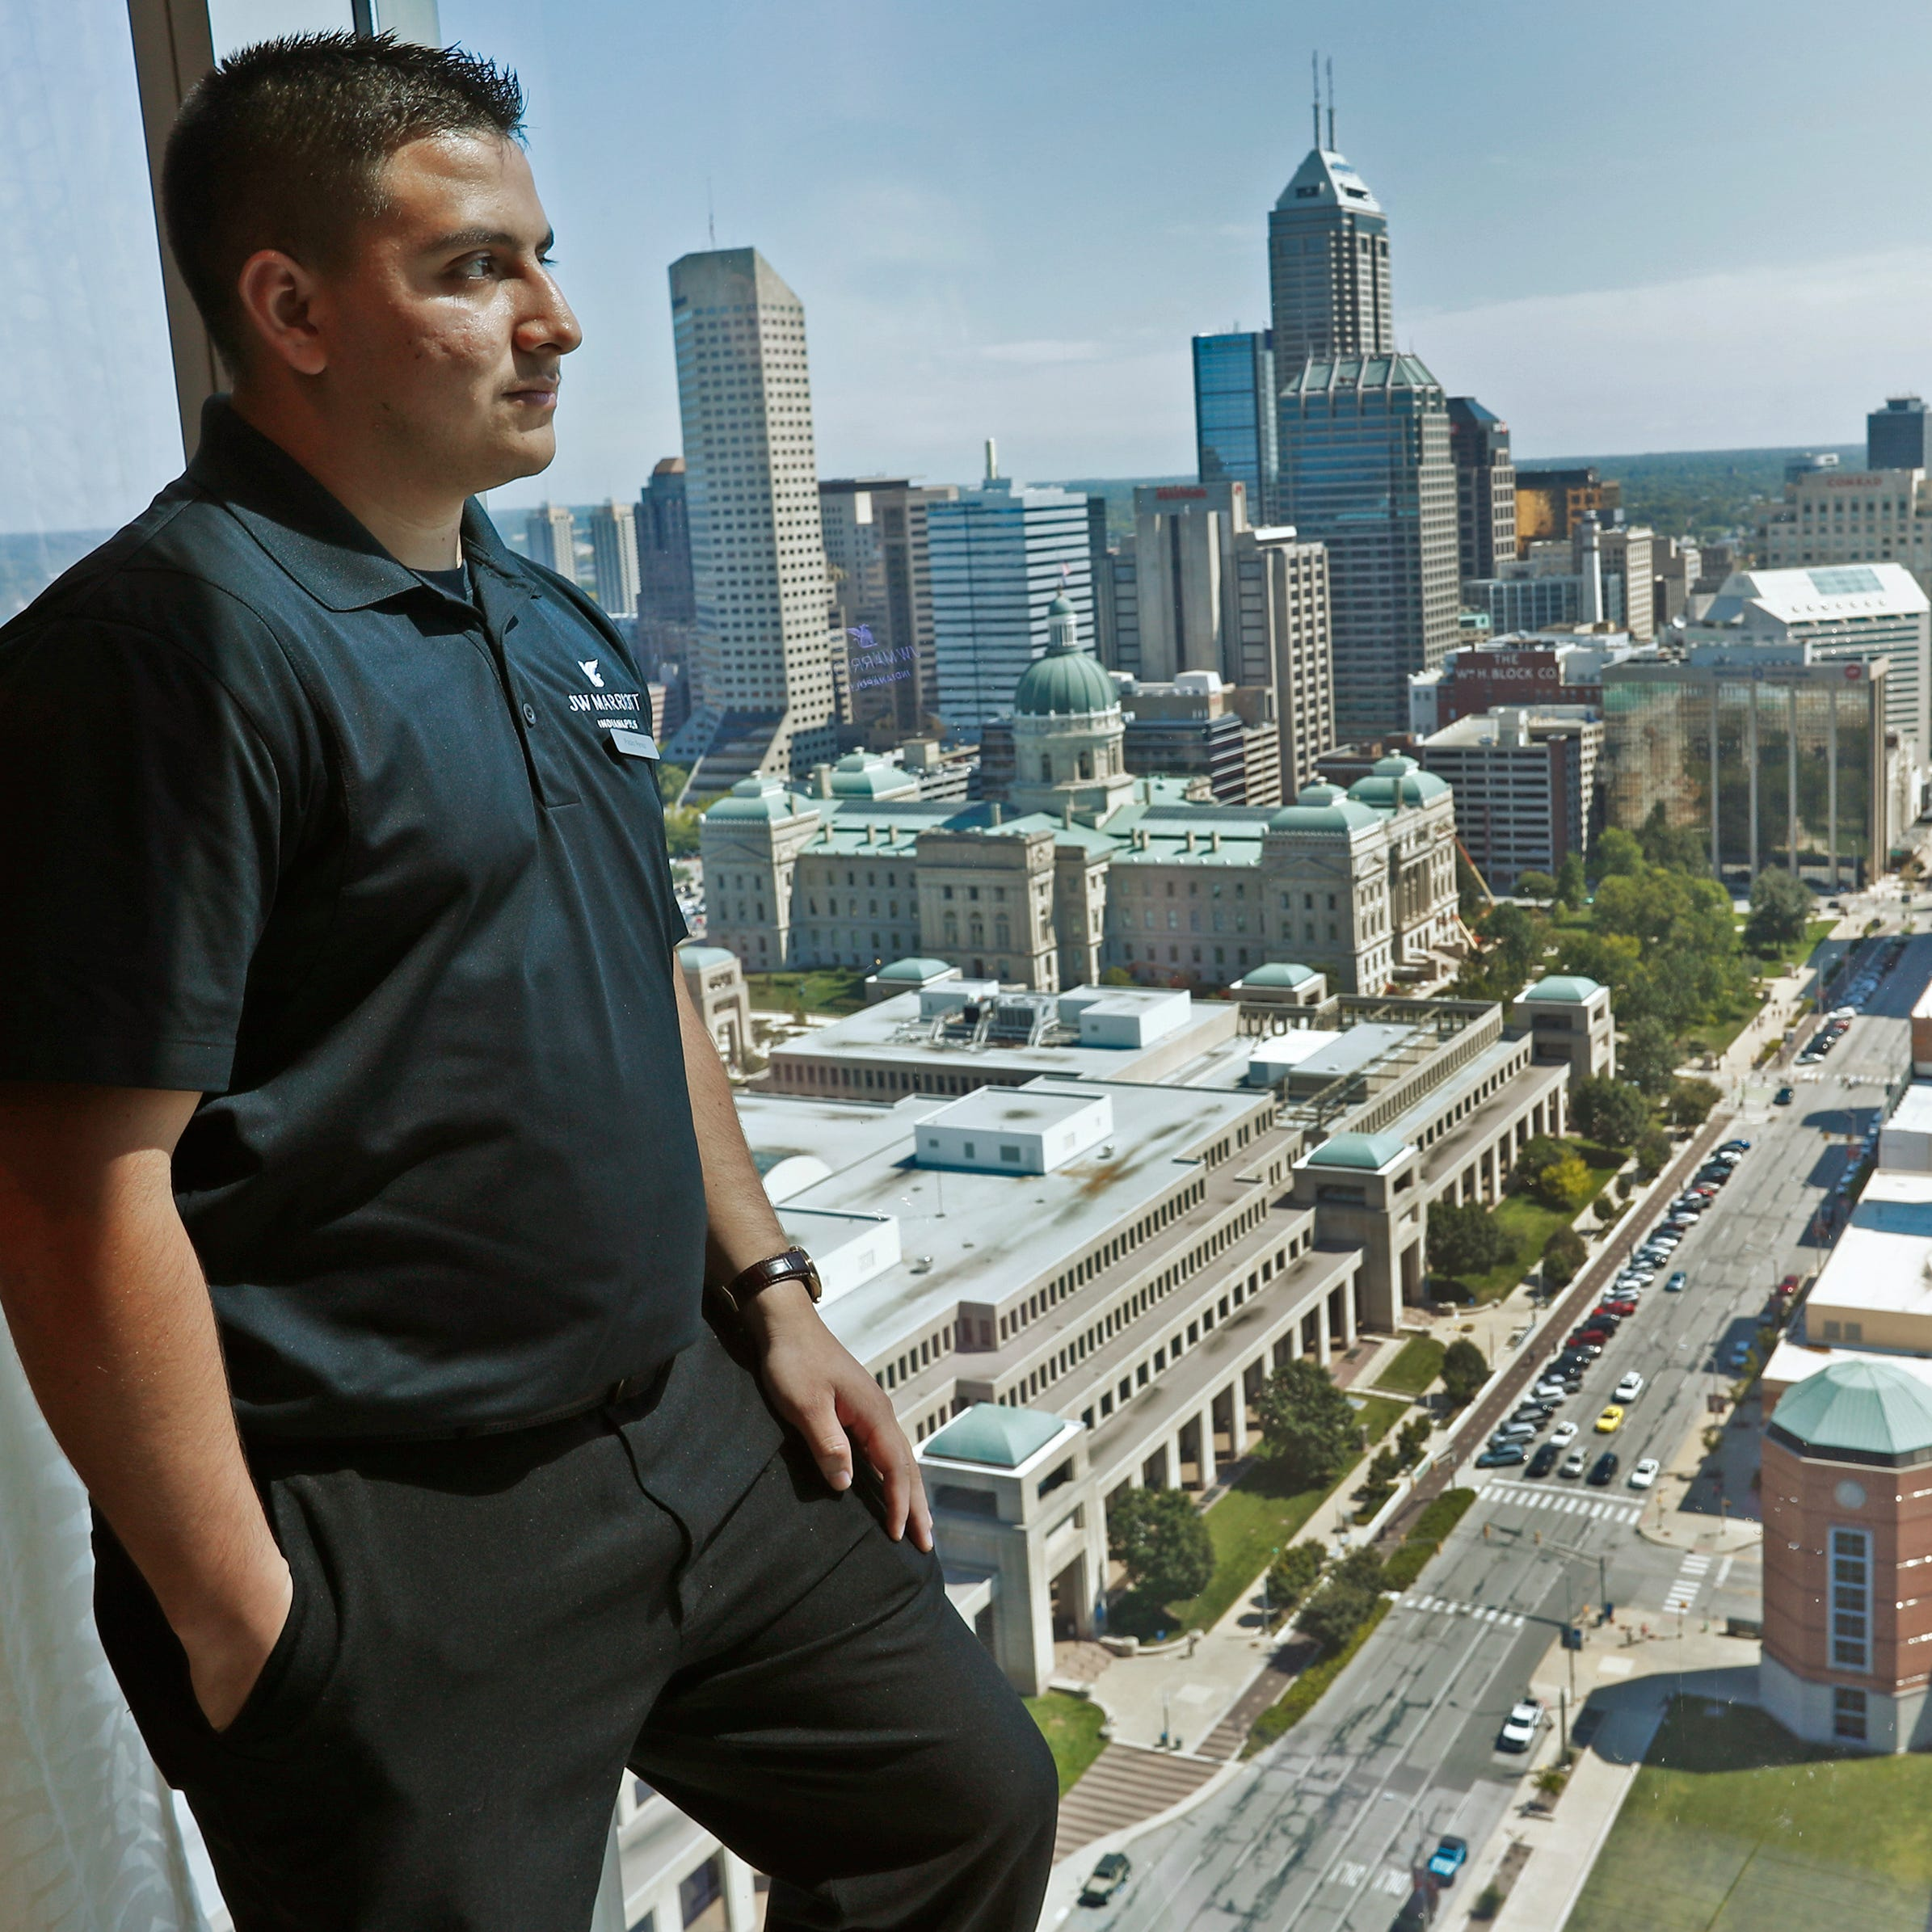 Indy hotel's rising star was born in Mexico, a breadwinner at 16 and homeowner at 21